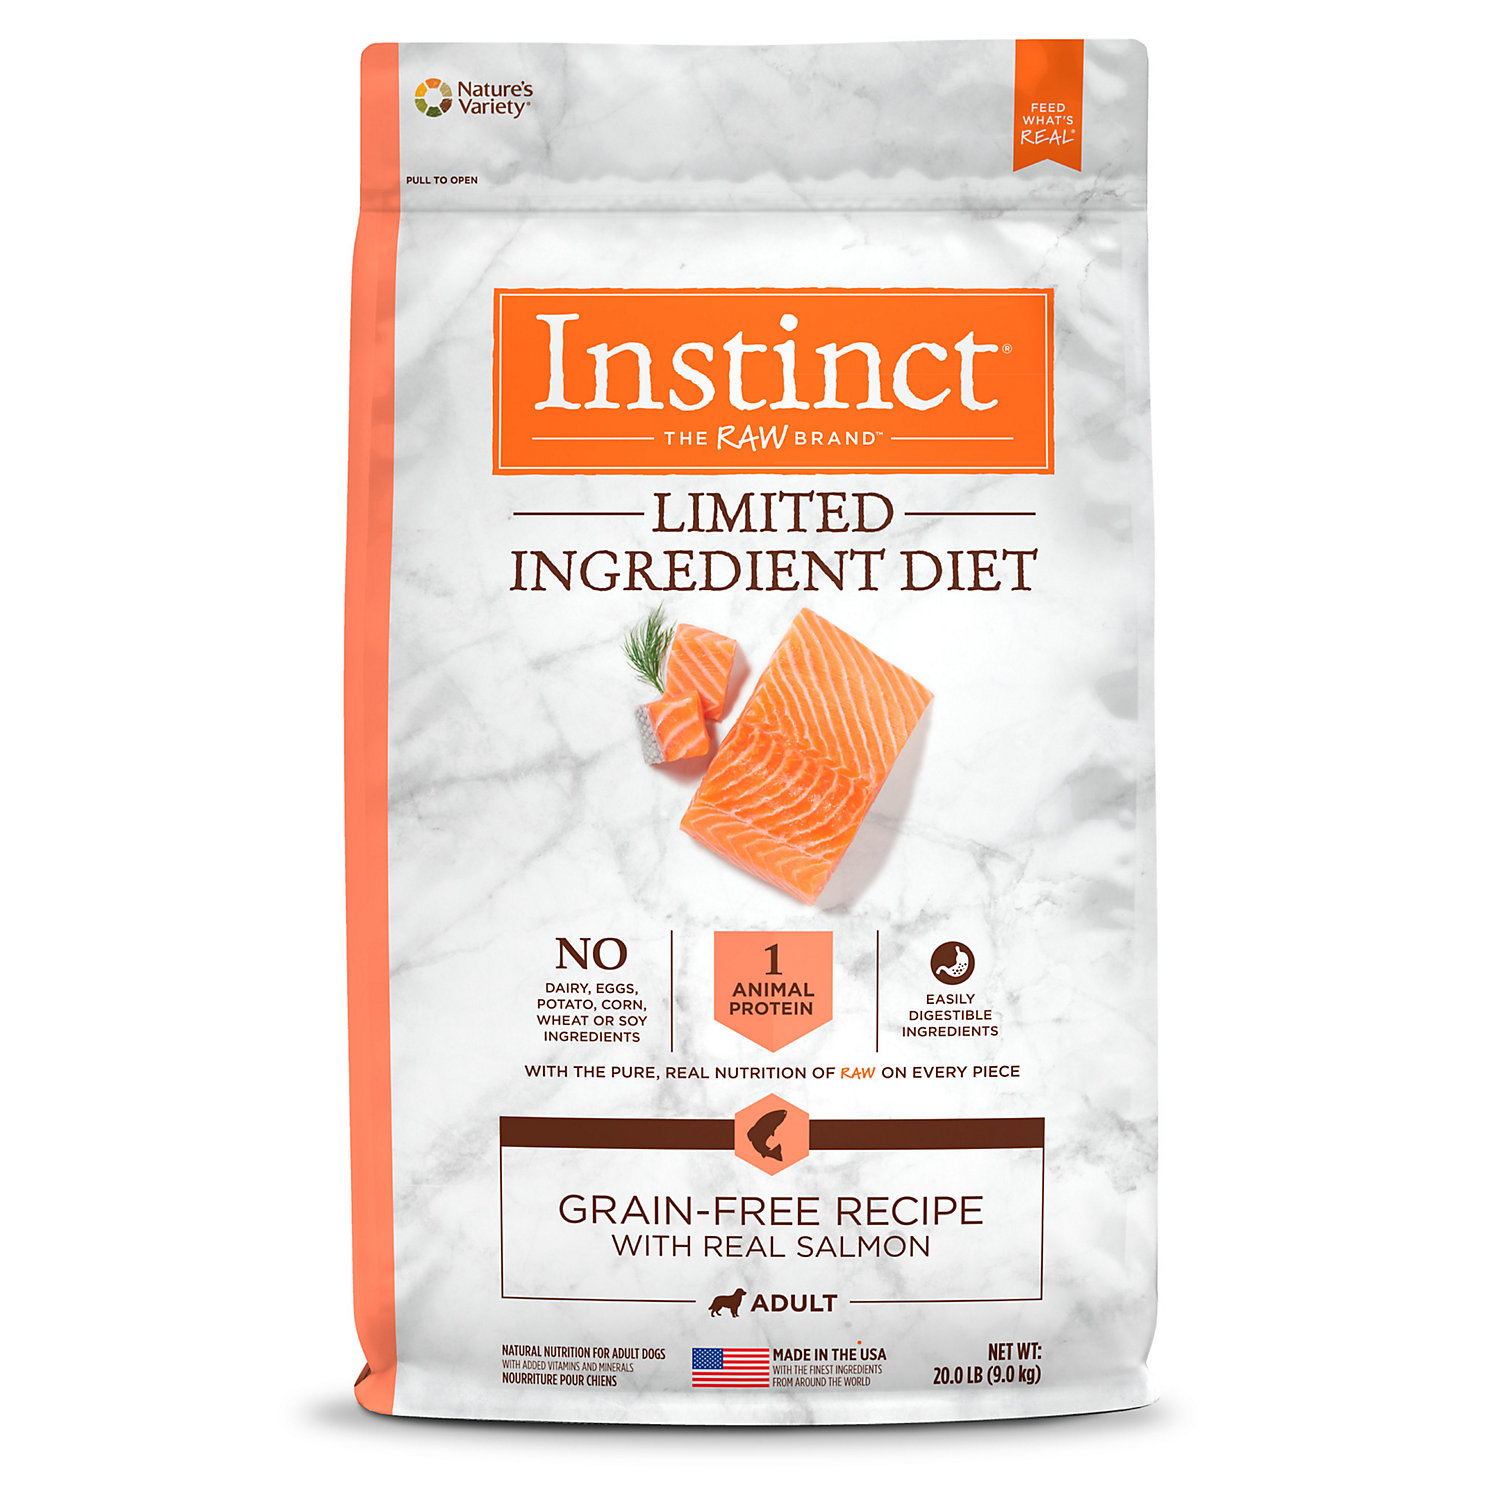 Instinct Limited Ingredient Diet Grain Free Recipe with Real Salmon Natural Dry Dog Food by Nature's Variety